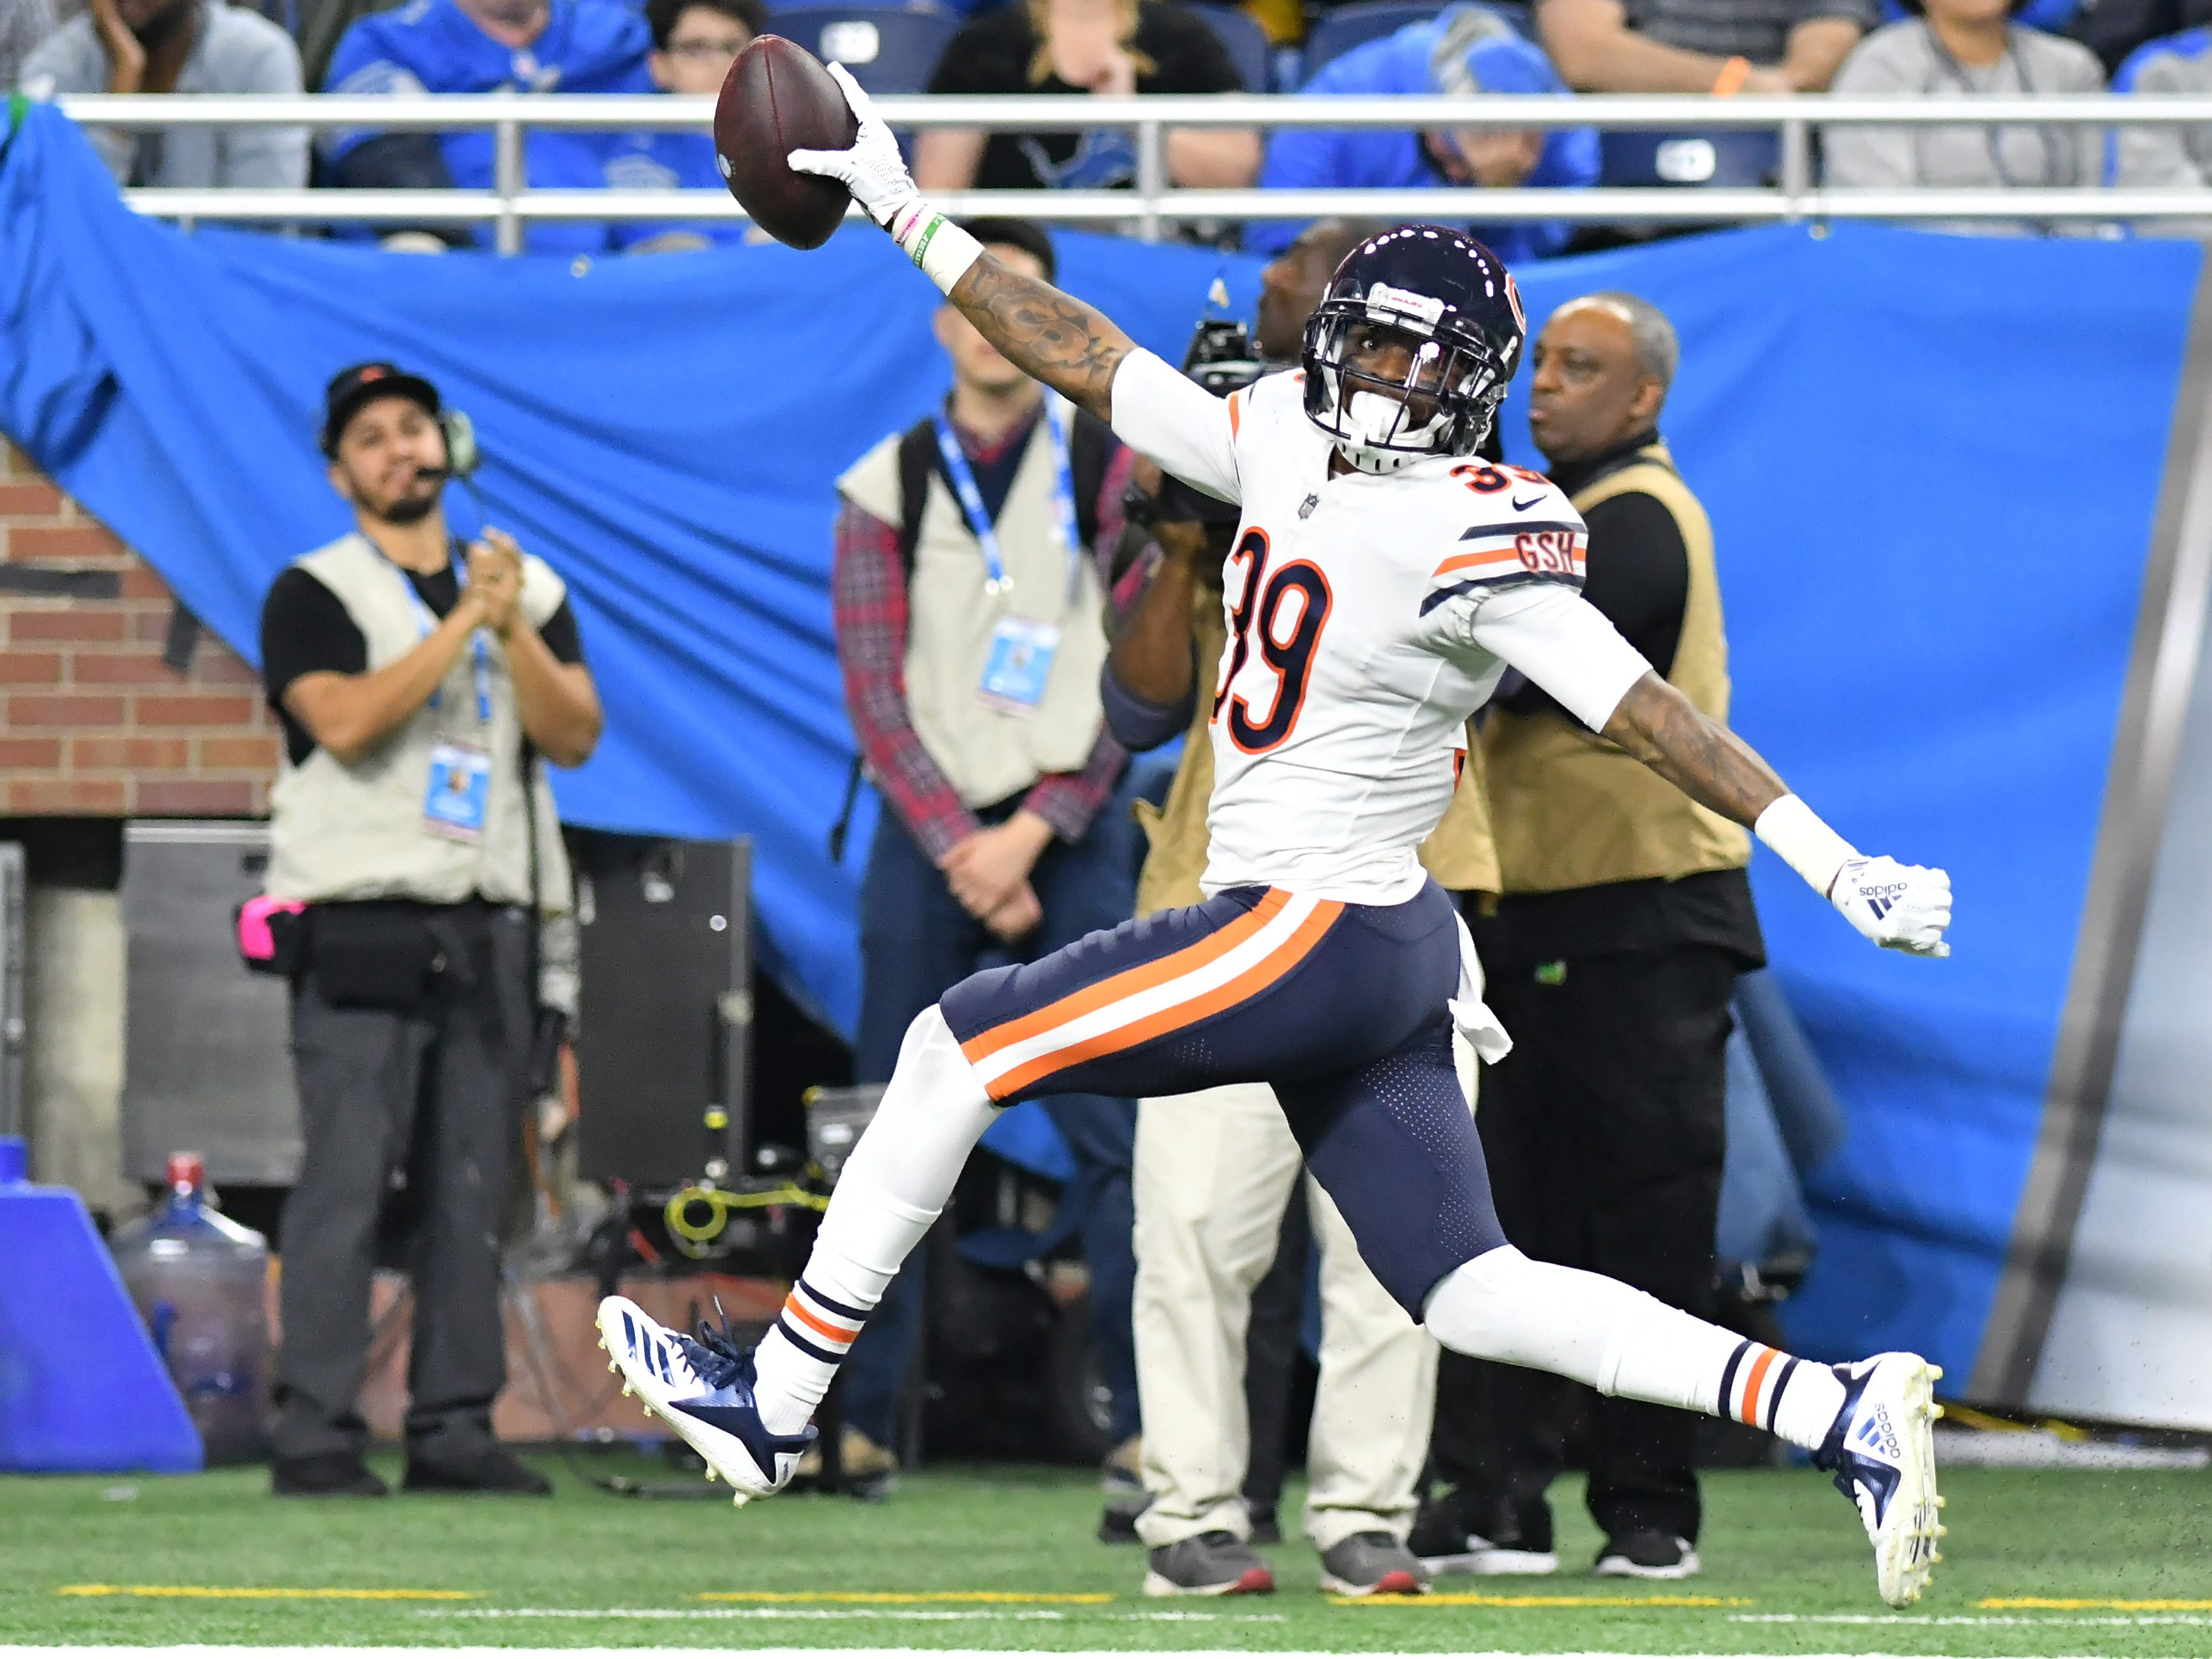 Bears' Eddie Jackson looks back as he takes his interception towards the end zone to score In the fourth quarter.